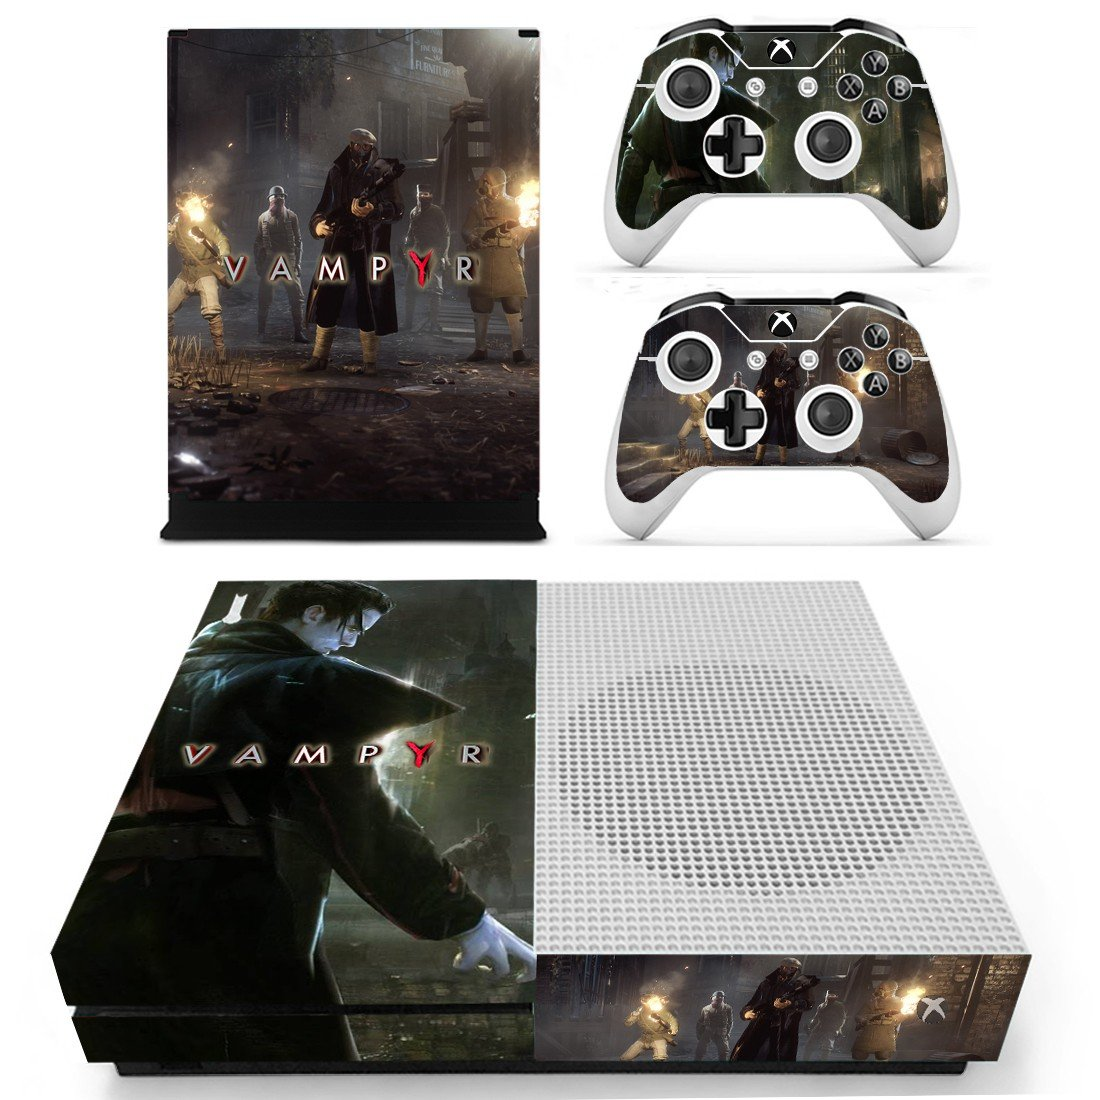 Vampyr decal skin sticker for Xbox One S console and controllers